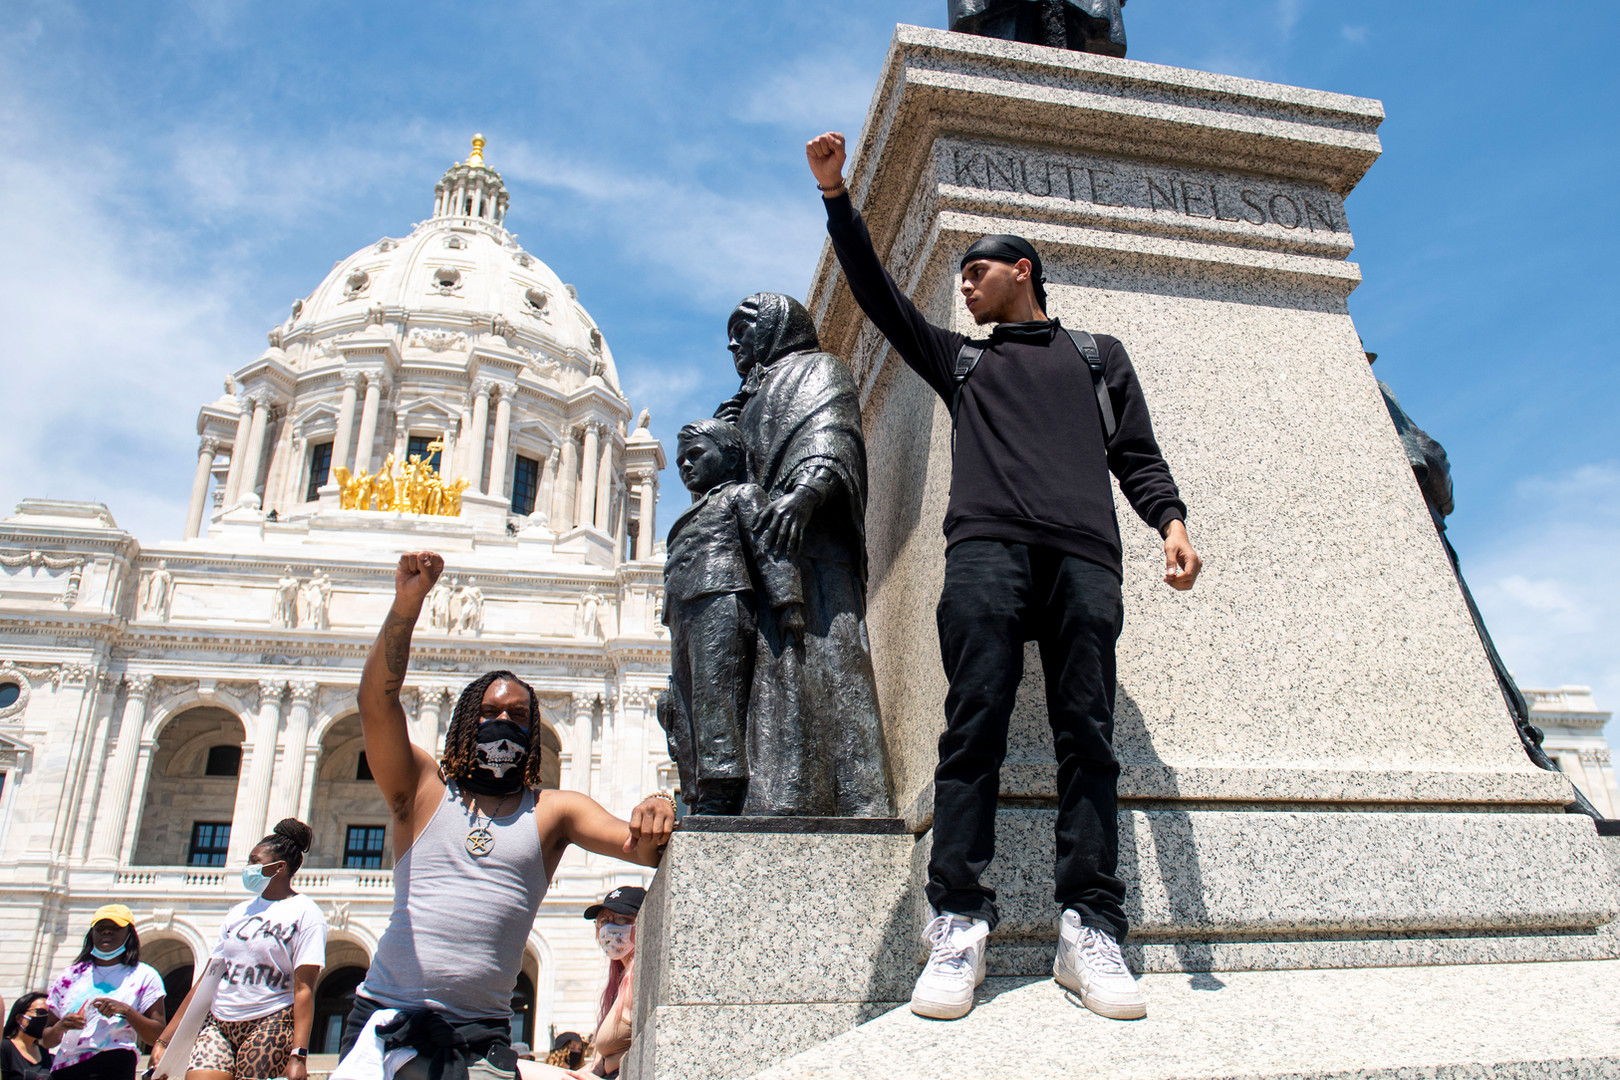 Xavier Hayden, left, and Ty Henderson, right, raise their fists at a student-organized rally outside the Minnesota State Capitol on Tuesday, June 2.